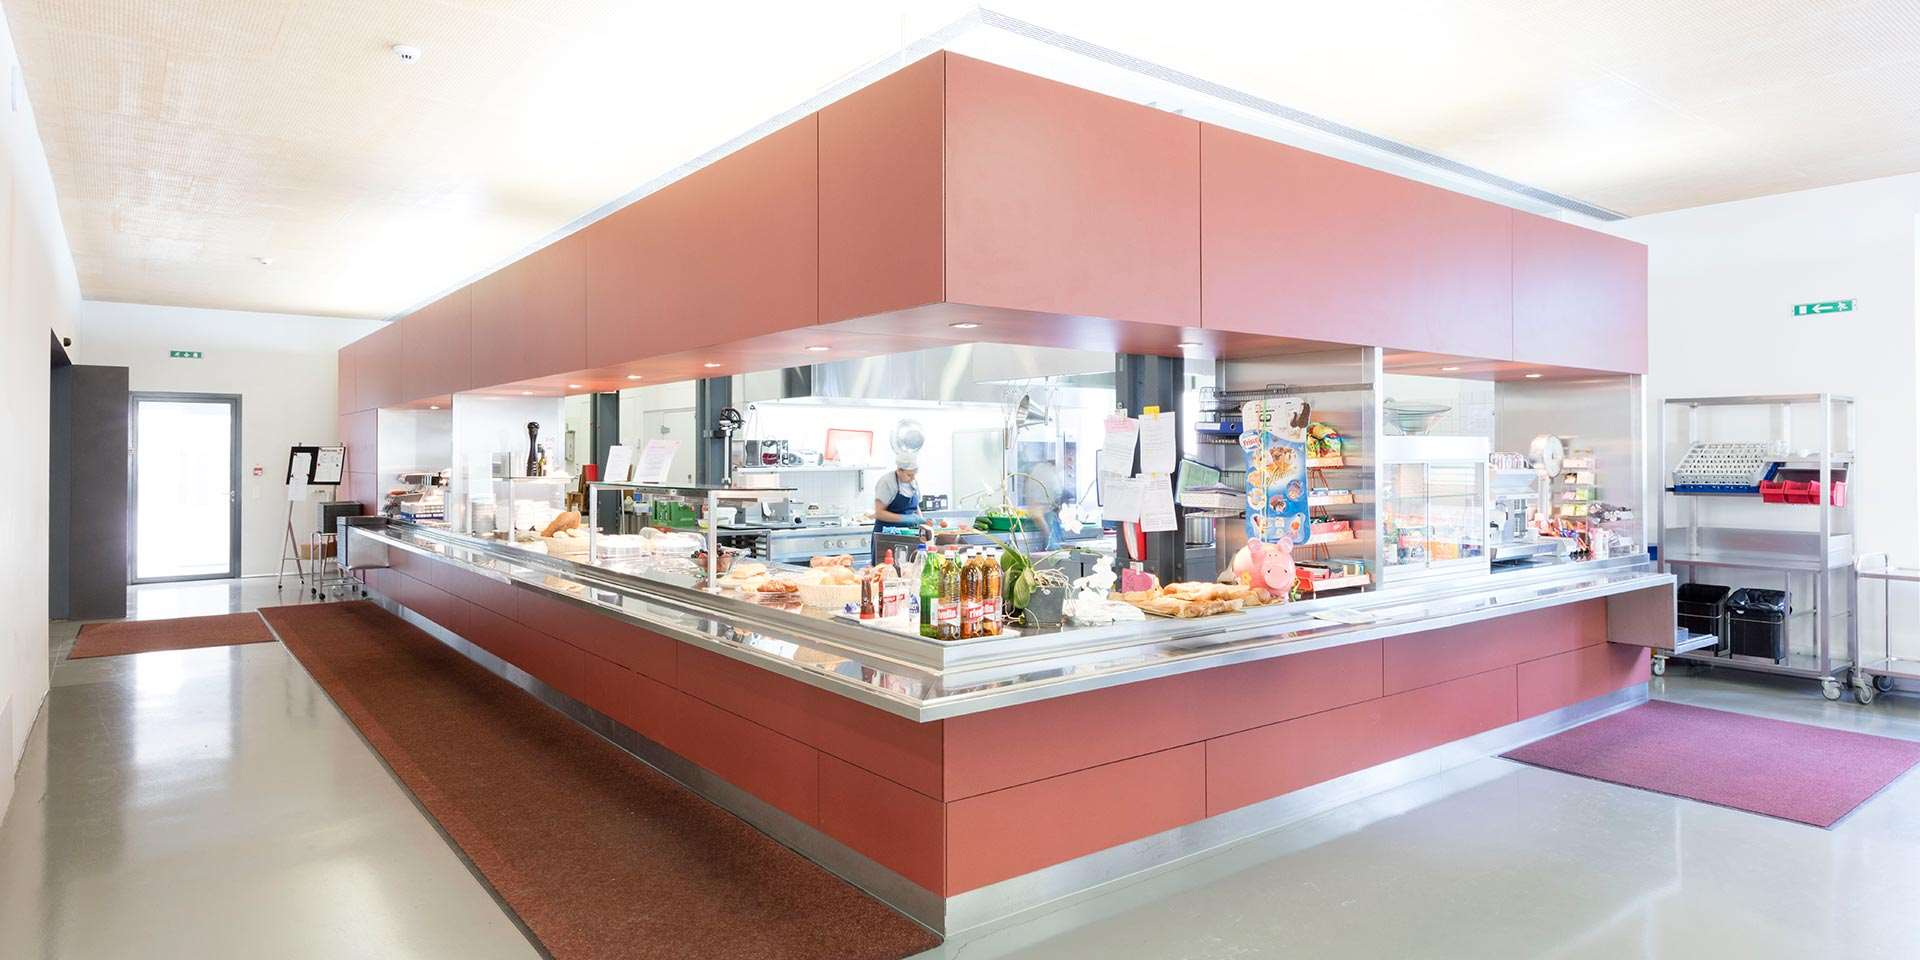 Cantine de l'usine by Eternit® 6